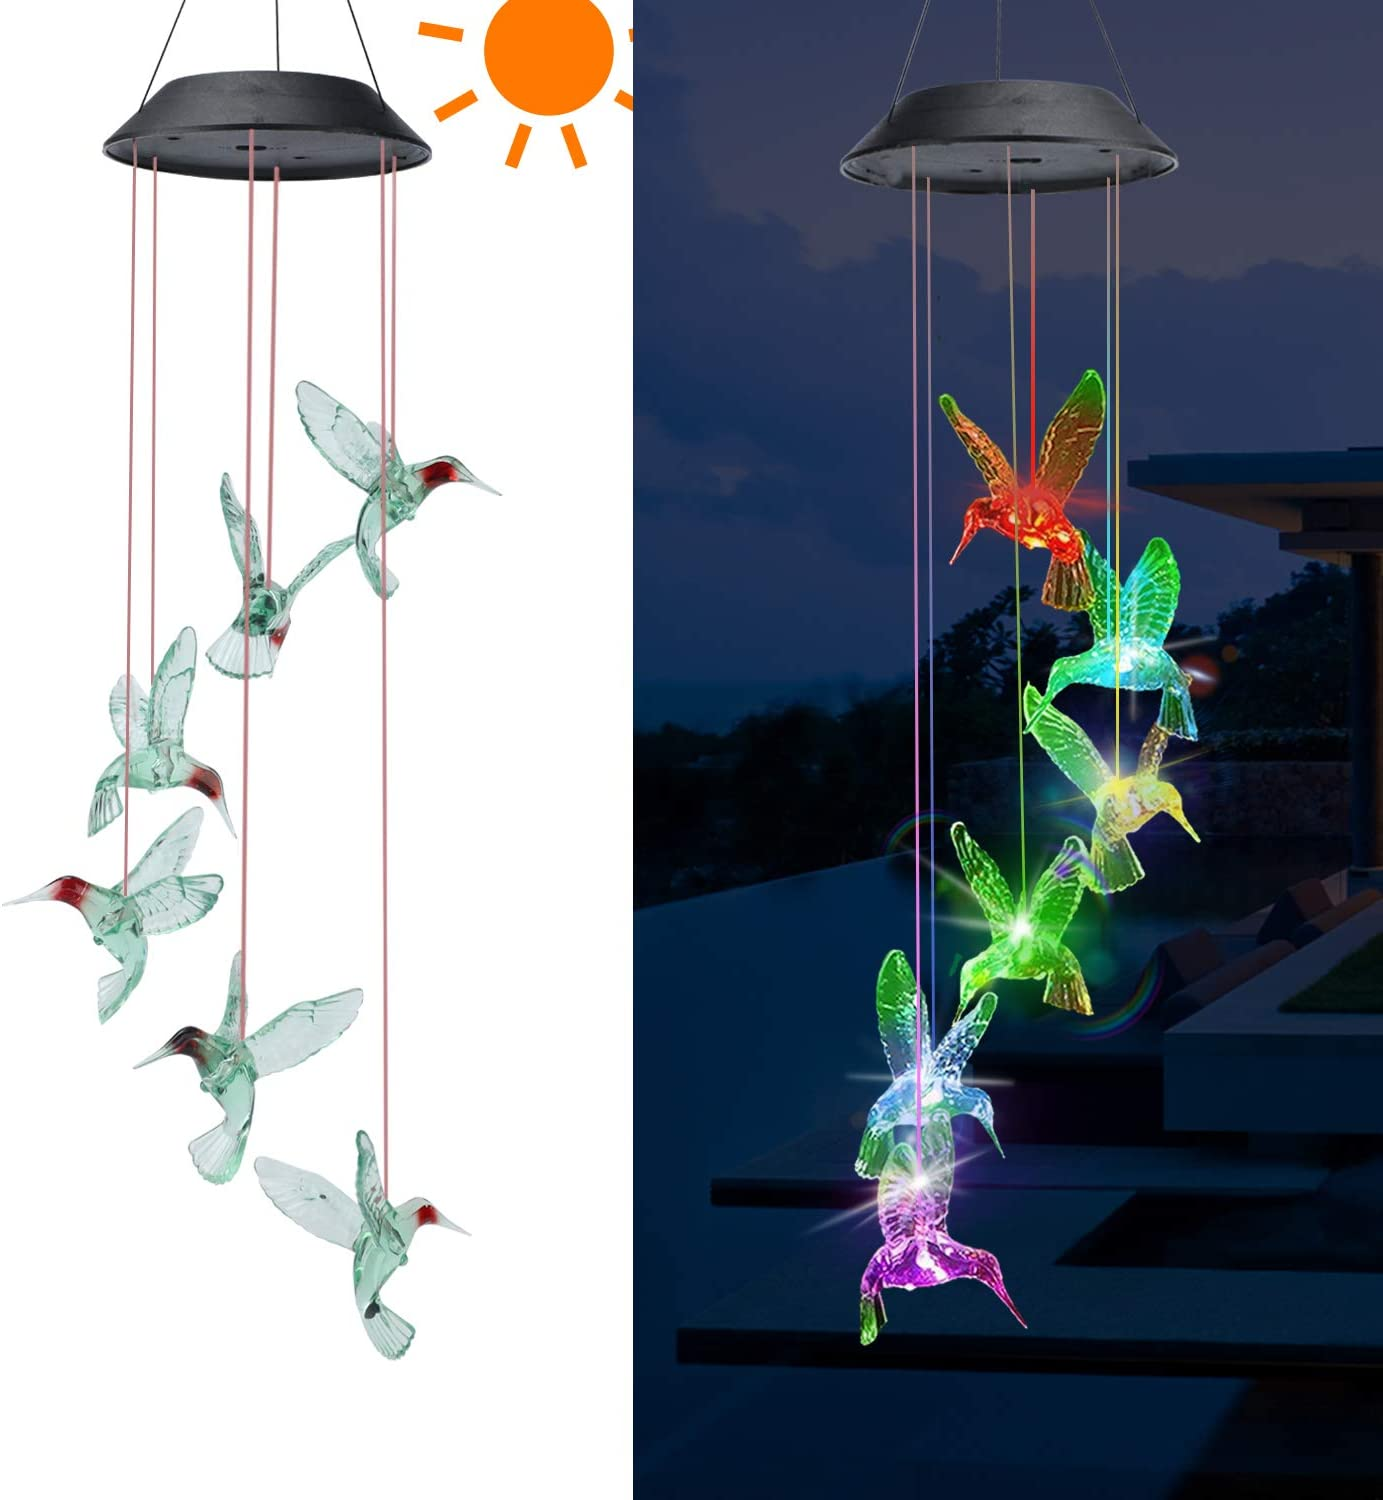 Outdoor Solar Garden Decorative Lights - Solar String Lights,Solar Bird Wind Chime Color Changing Hummingbird Solar Light for Walkway Pathway Backyard Christmas Decoration Parties